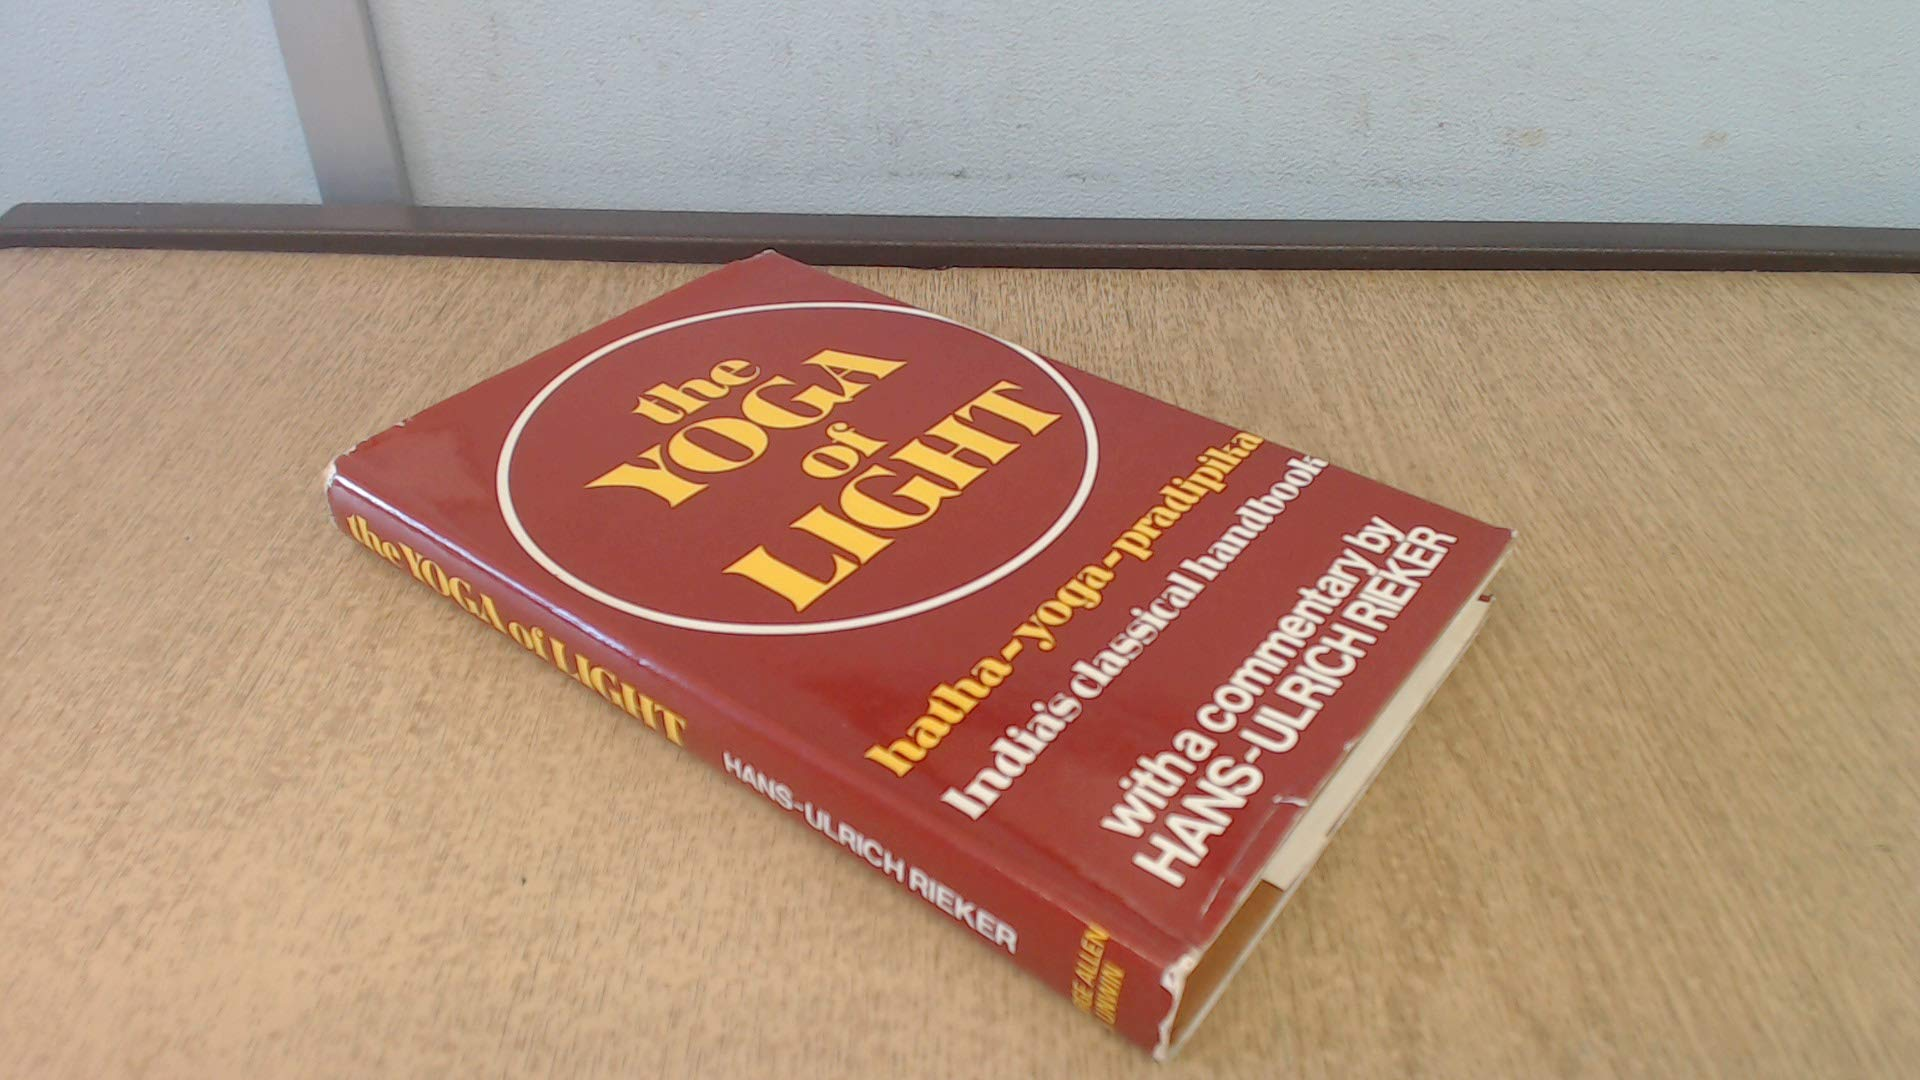 Yoga of Light: Hatha-yoga-pradipika: Amazon.es: Swami ...